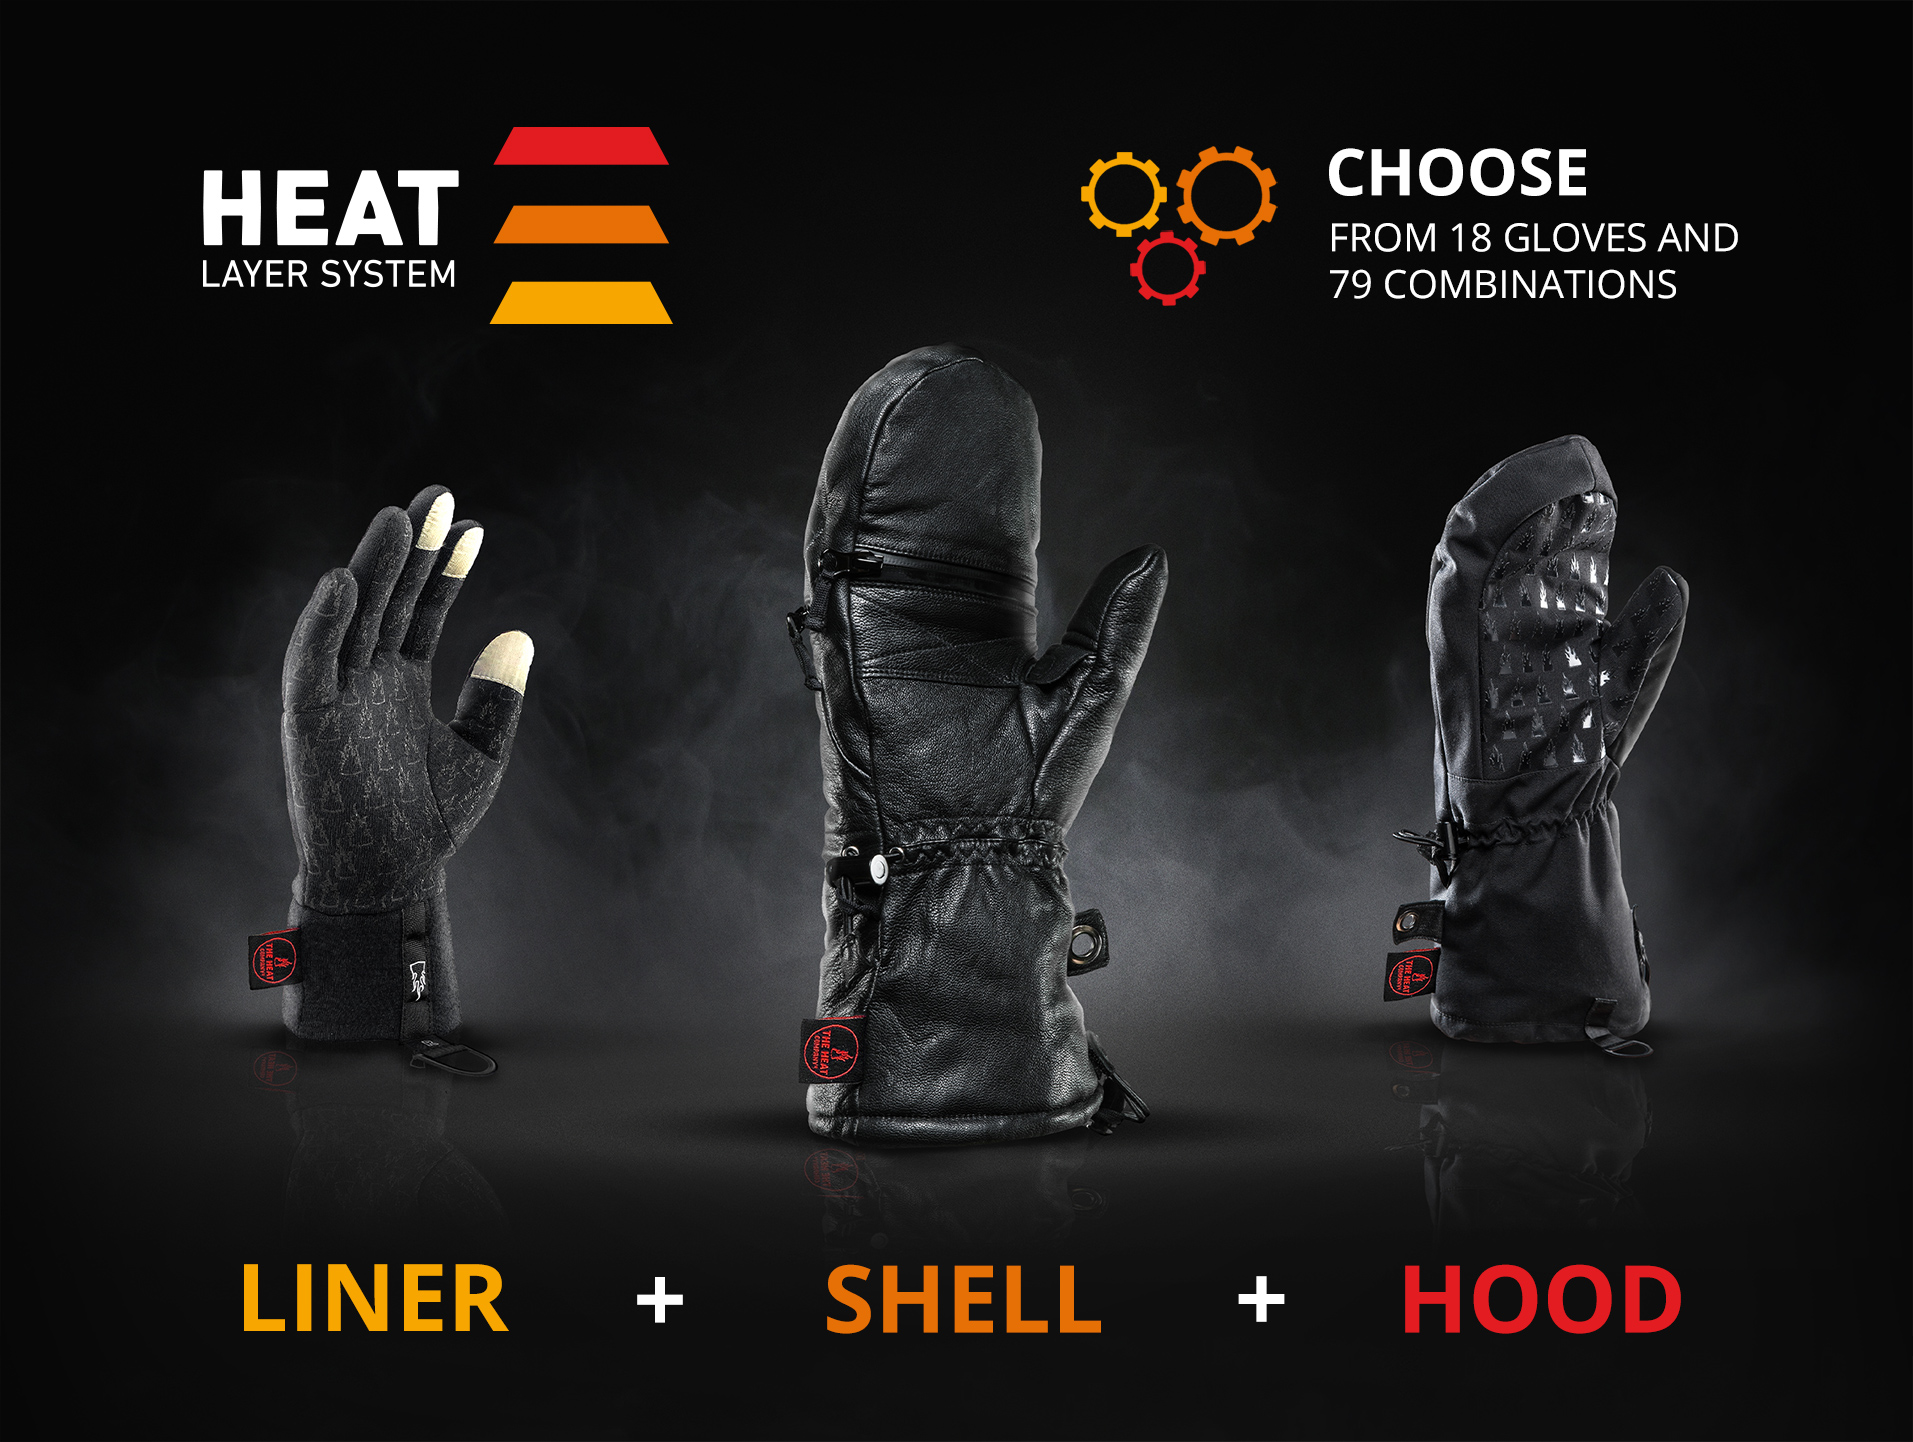 HEAT LAYER SYSTEM from THE HEAT COMPANY: Gloves Layer System for the best Photography Gloves: LINER + SHELL + POLAR HOOD